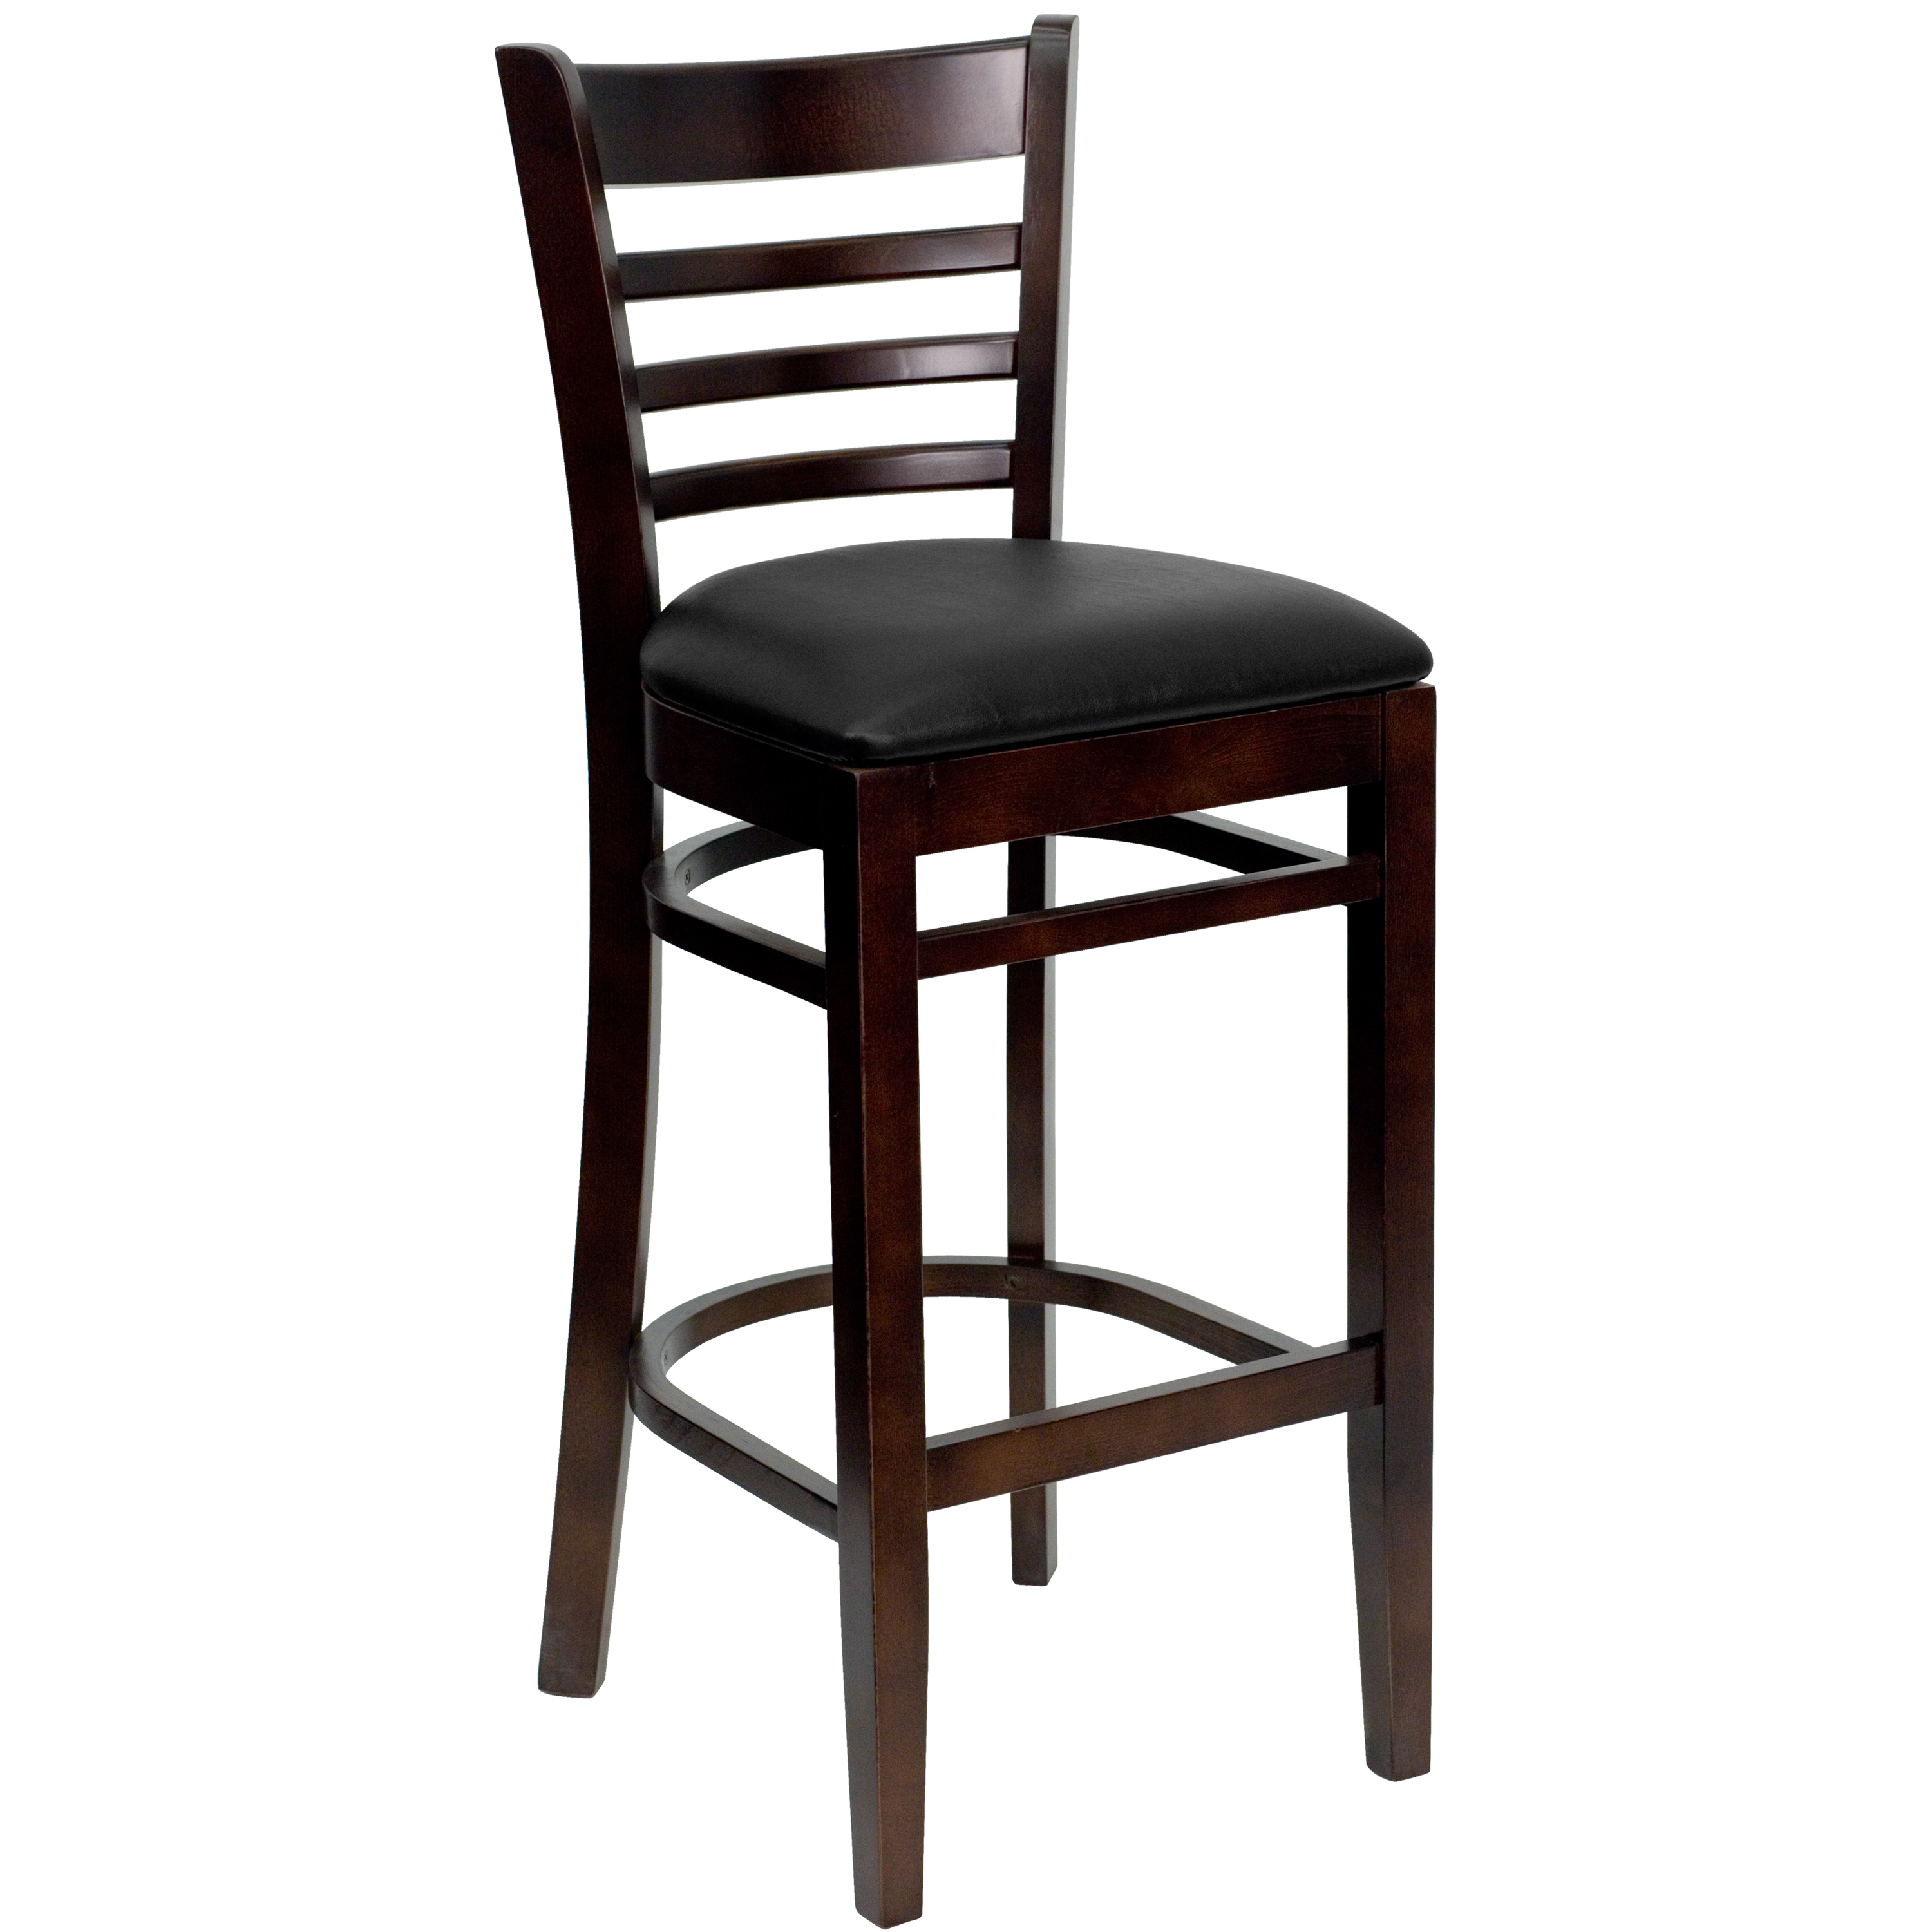 "Ladder Back Bar Stool 31"", Walnut and Black"